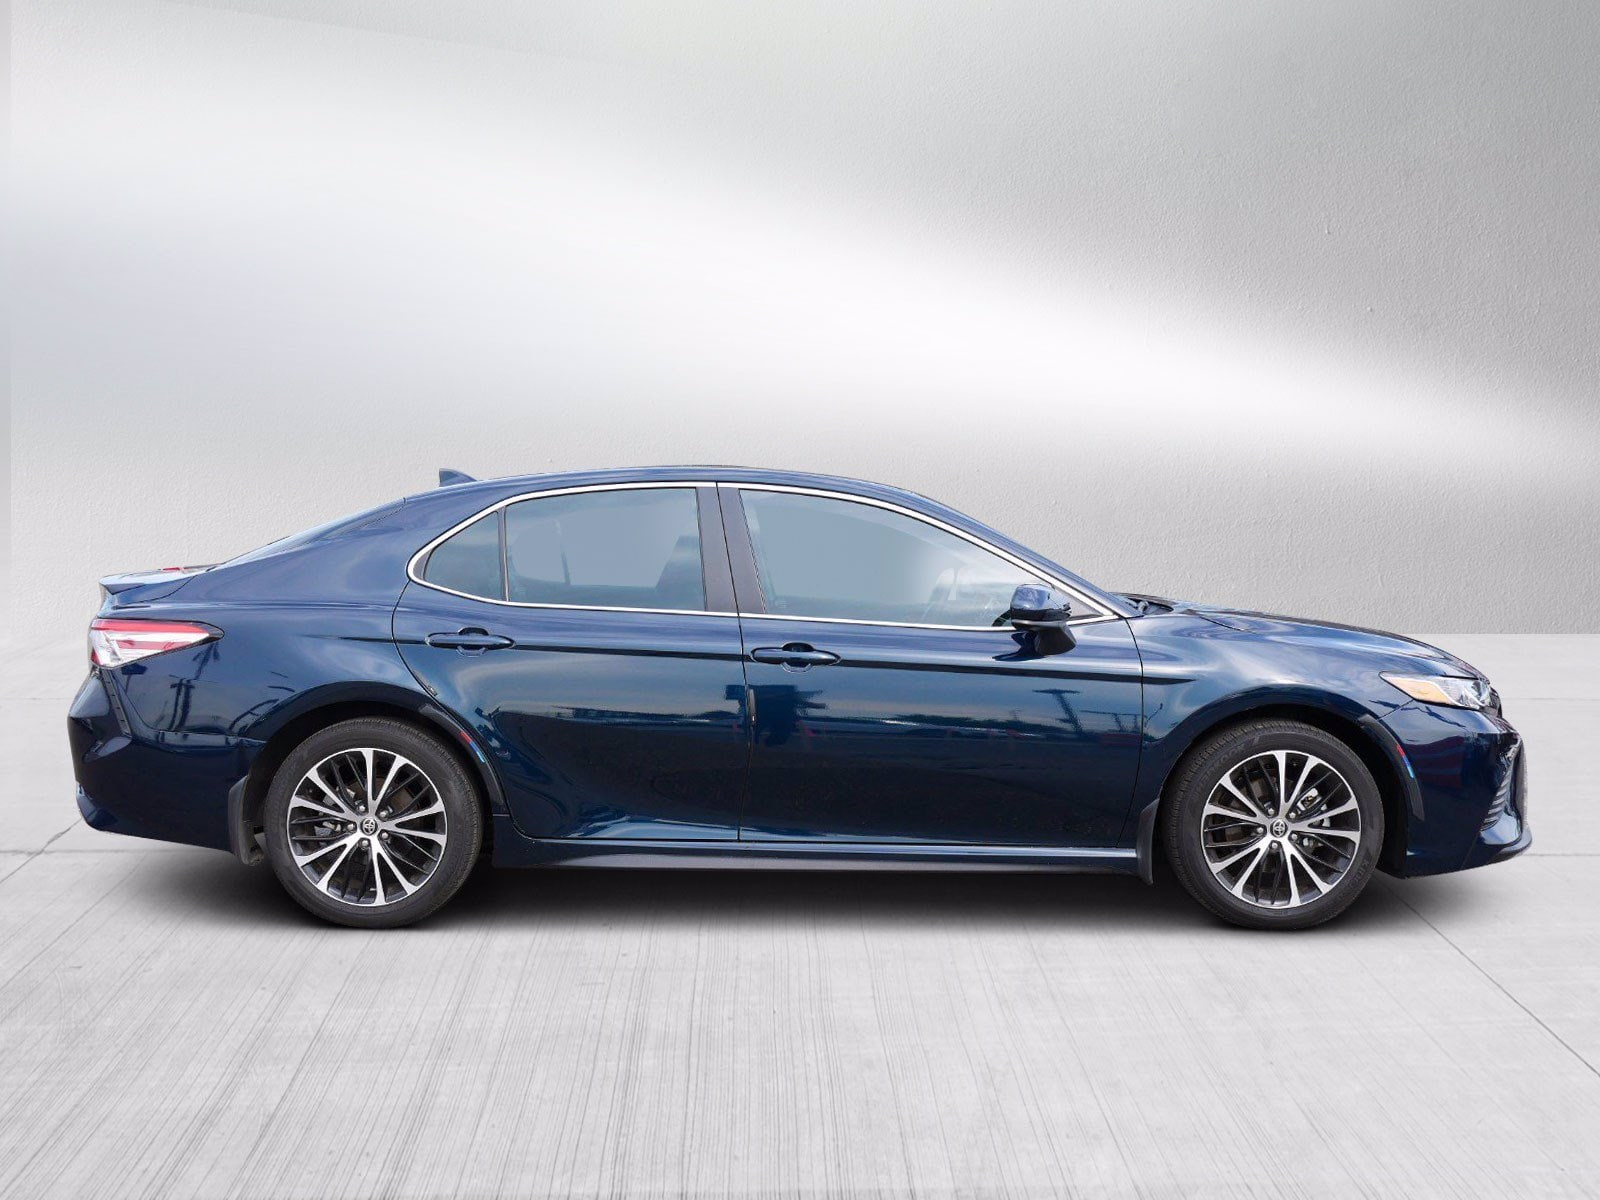 Used 2020 Toyota Camry SE with VIN 4T1G11AK4LU988961 for sale in Bloomington, Minnesota